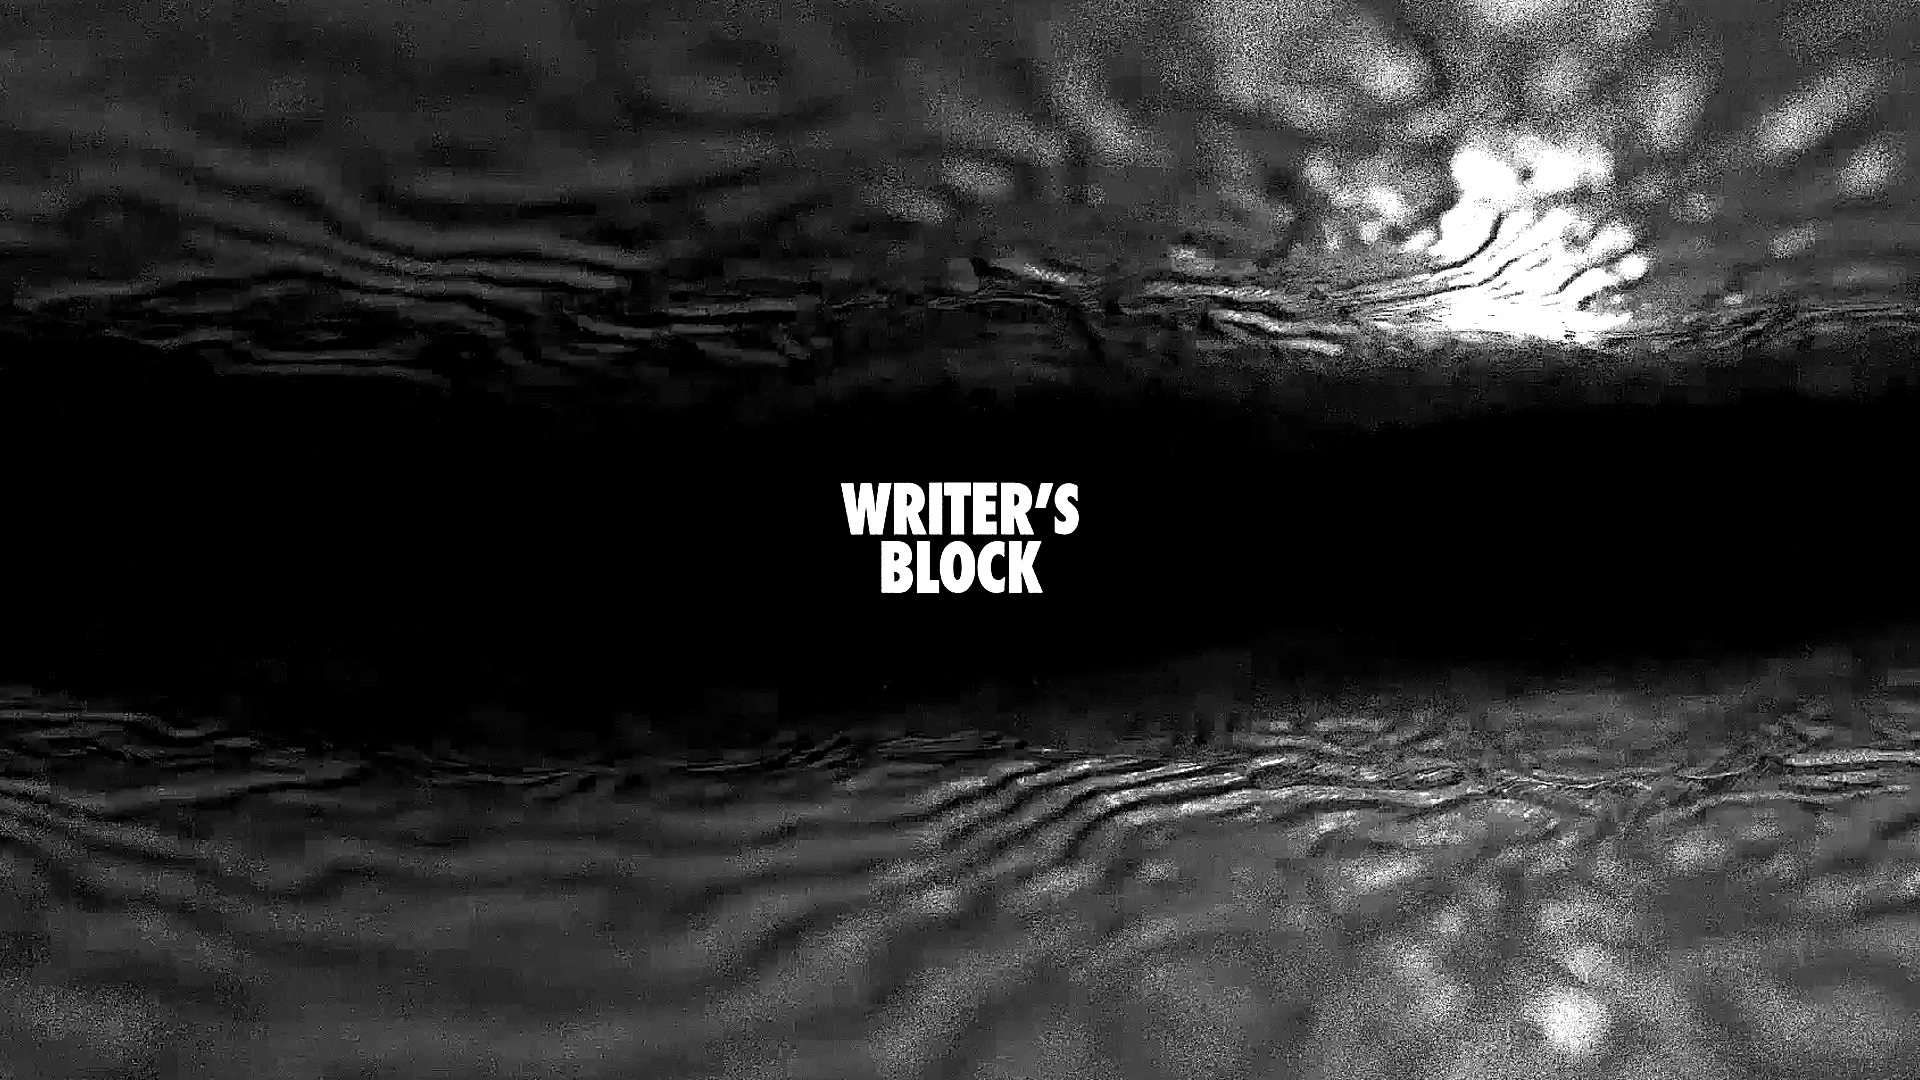 Get lost in Lixo's 360° interactive video for 'Writer's Block' feat. Trim